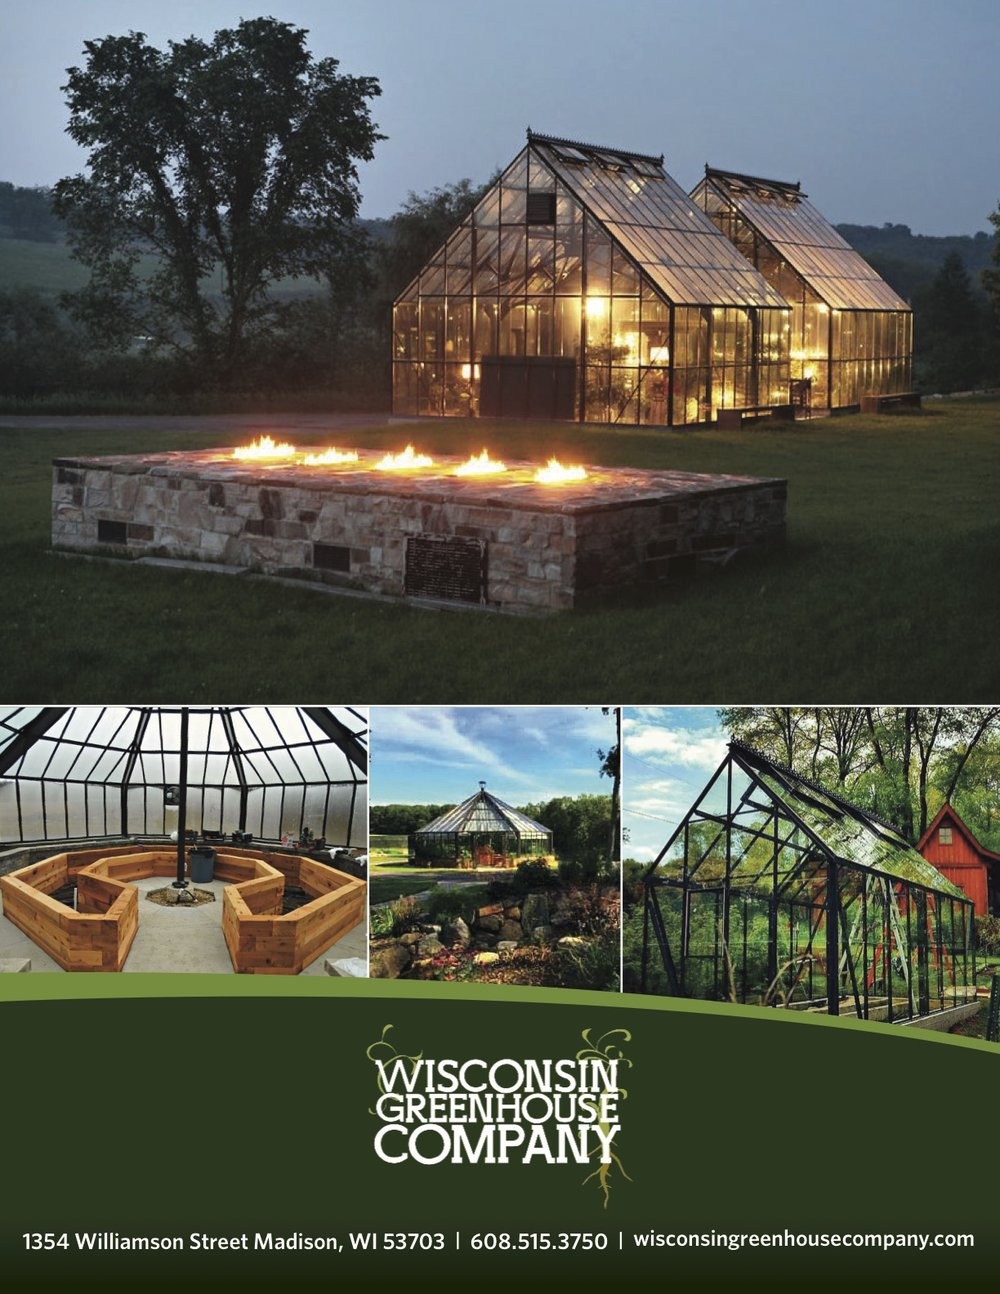 111552_Wisconsin Greenhouse Company_National Catalog (4) (dragged) 18.jpeg